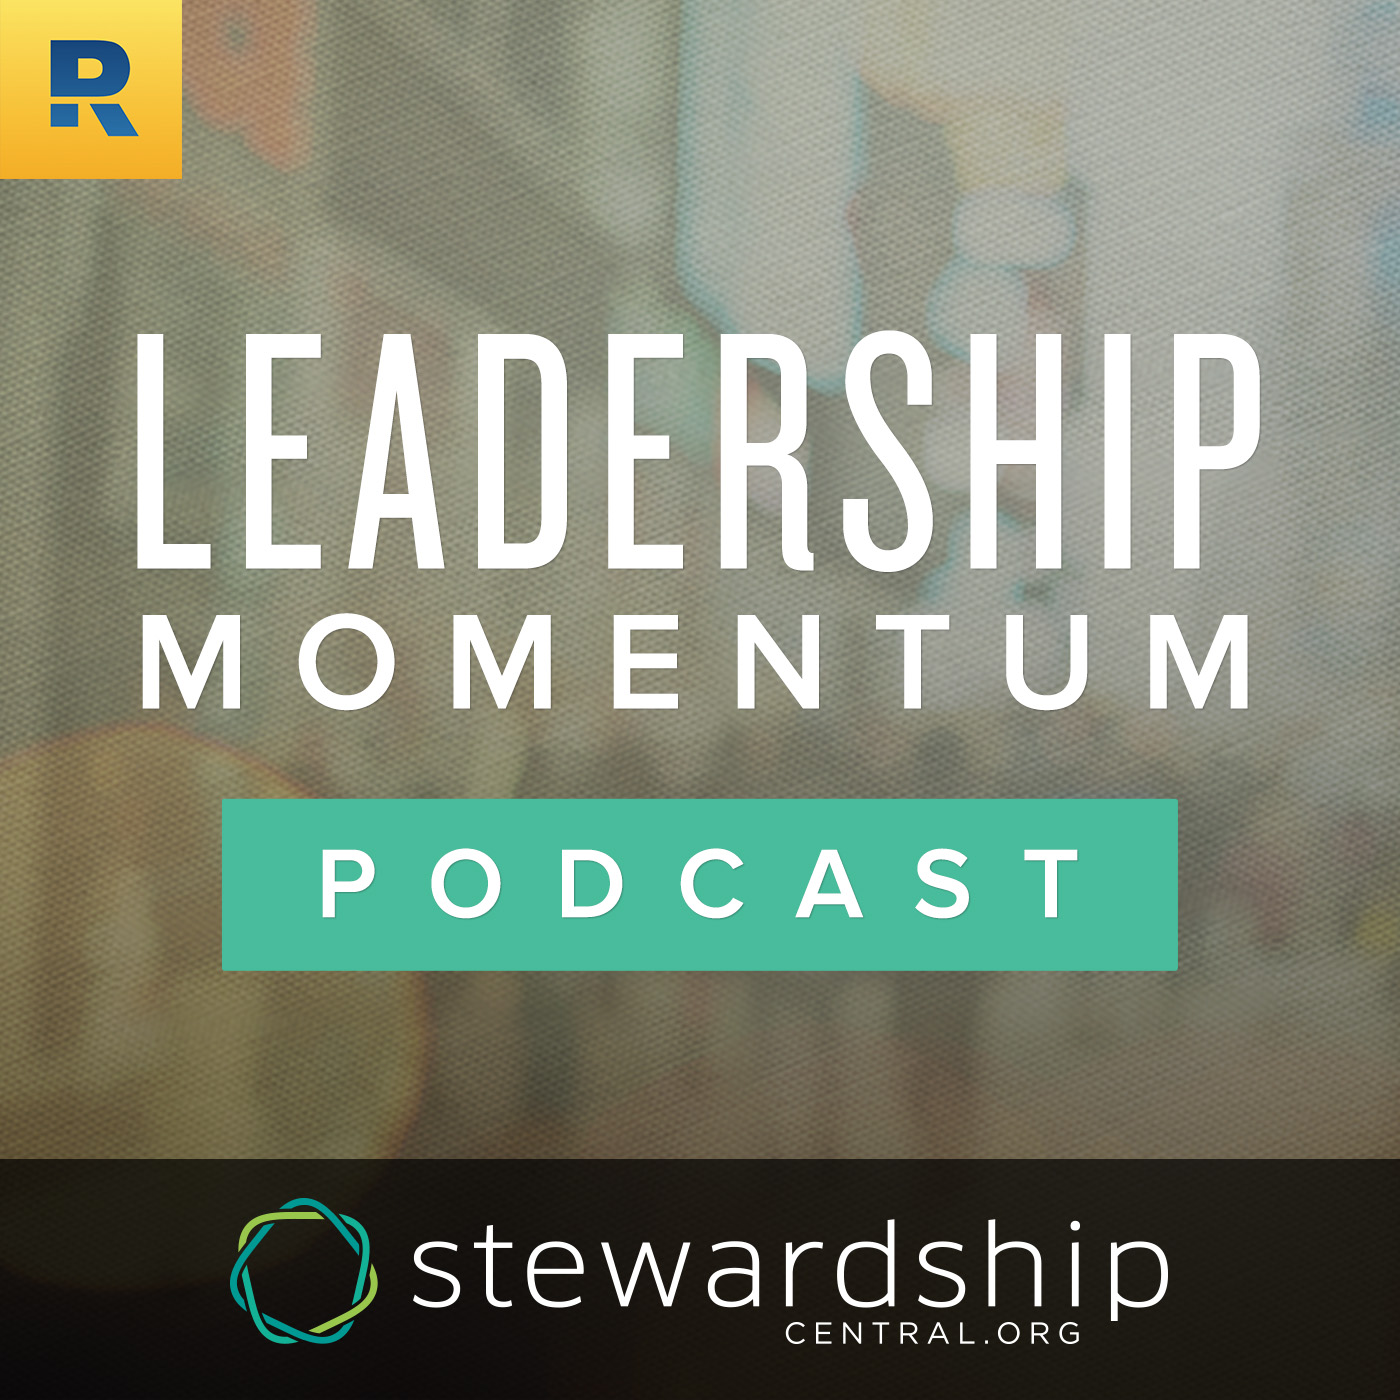 The Leadership Momentum Podcast